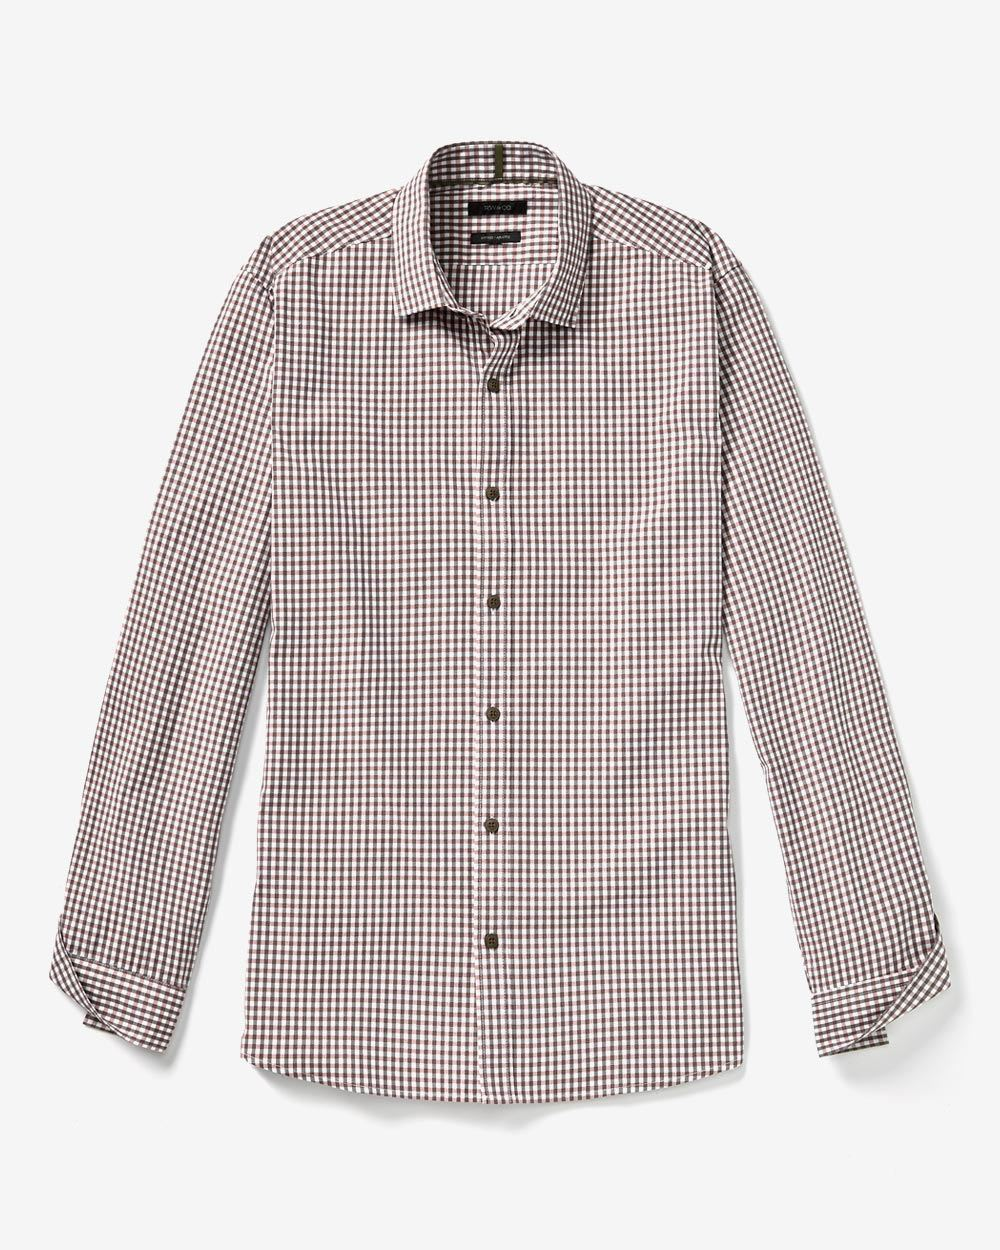 663ed3ed4b89f7 FITTED LONG SLEEVE SHIRT IN HEATHER CHECK